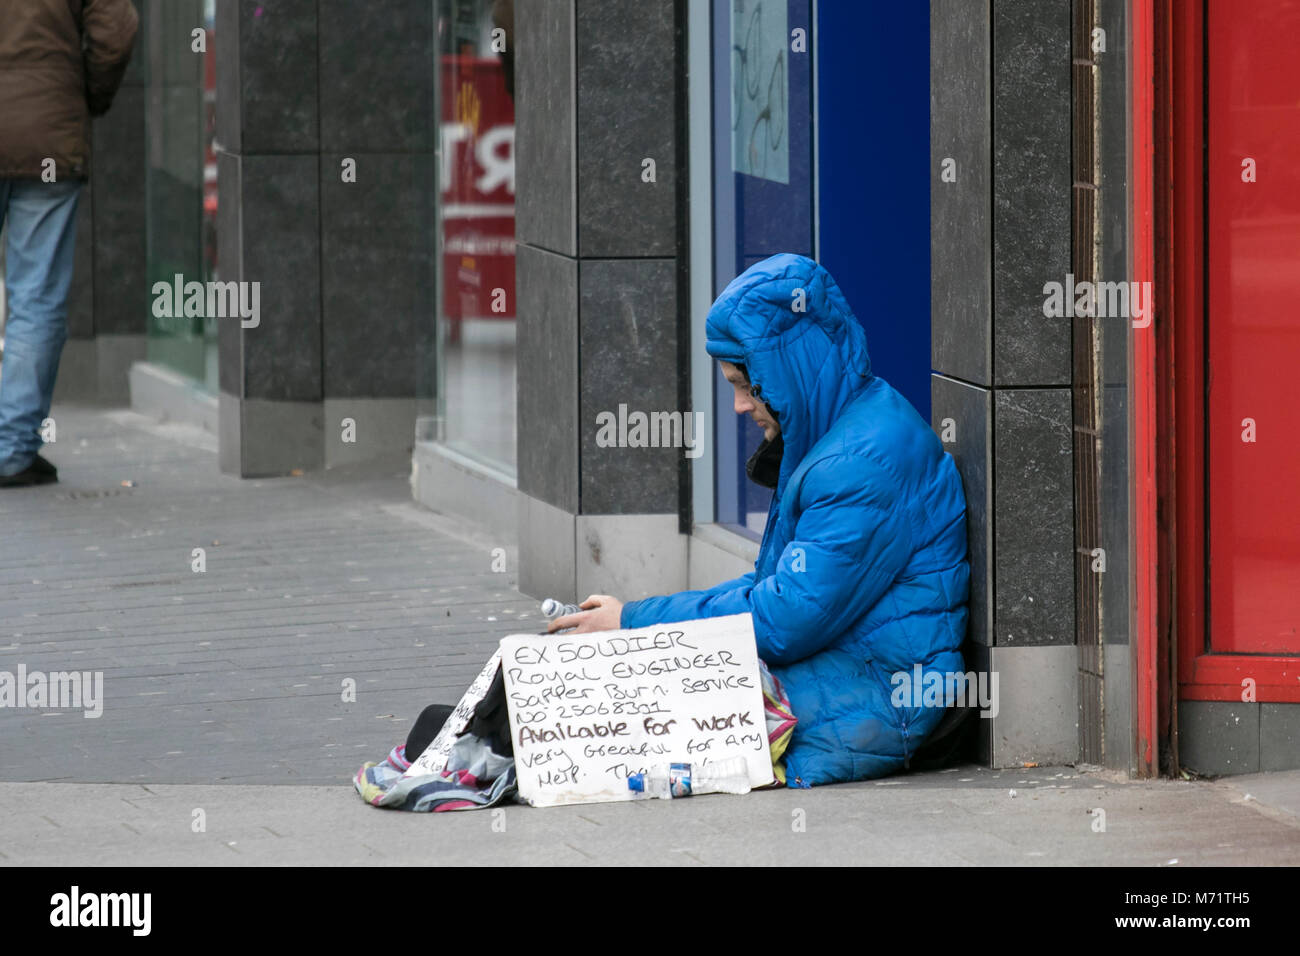 homeless homelessness beg beggar tramp swep rough sleeper sleeping cold street poor hungry person bag lone alone - Stock Image